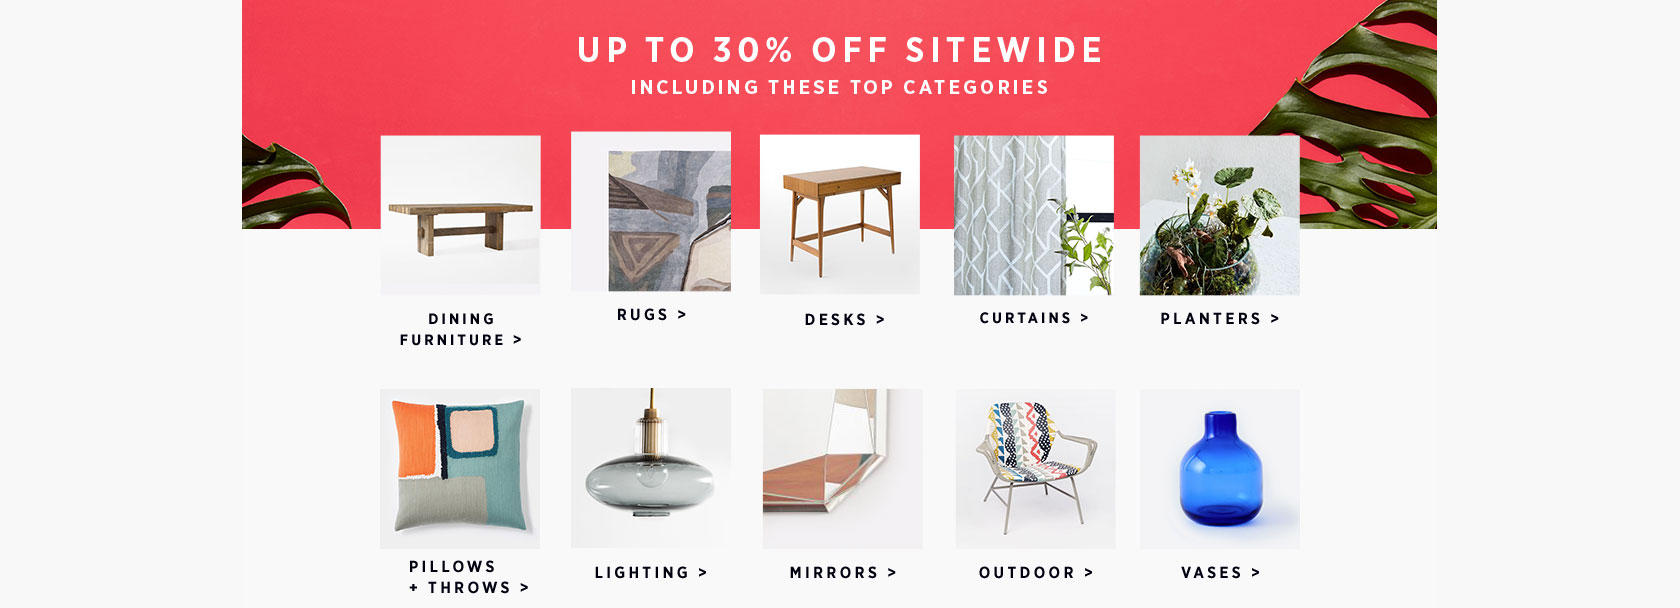 Up To 30% Off Sitewide Including These Categories